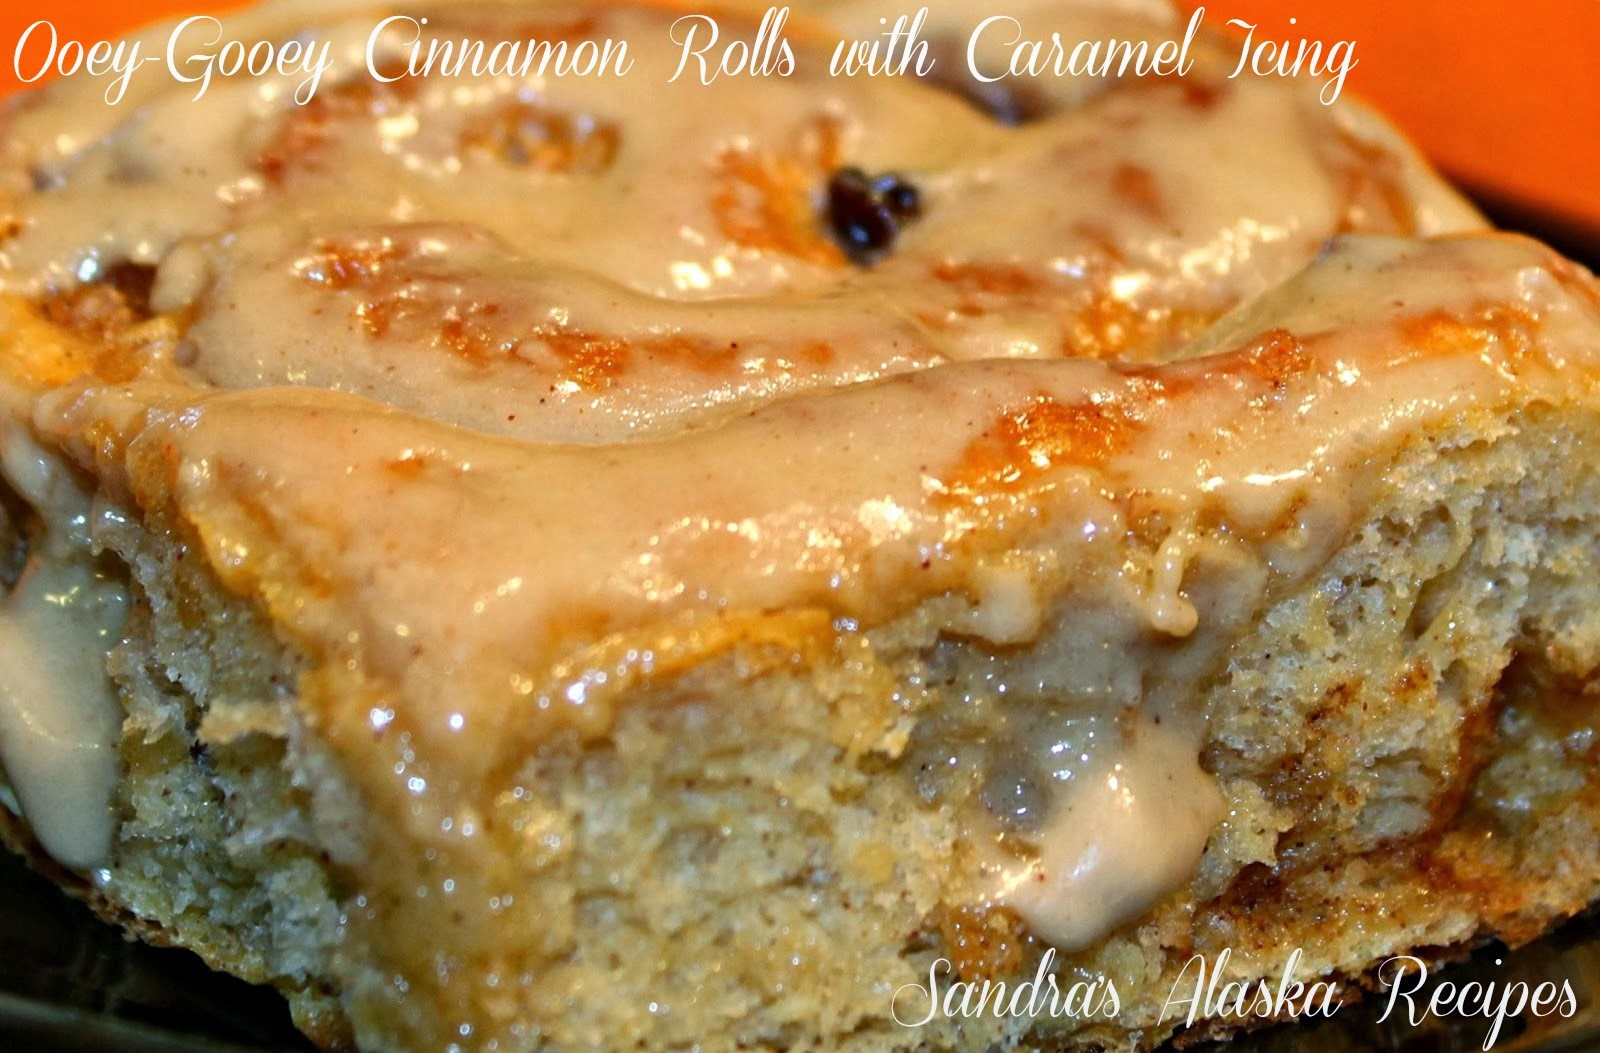 ... Recipes: SANDRA'S OOEY-GOOEY CINNAMON ROLLS with CARAMEL ICING